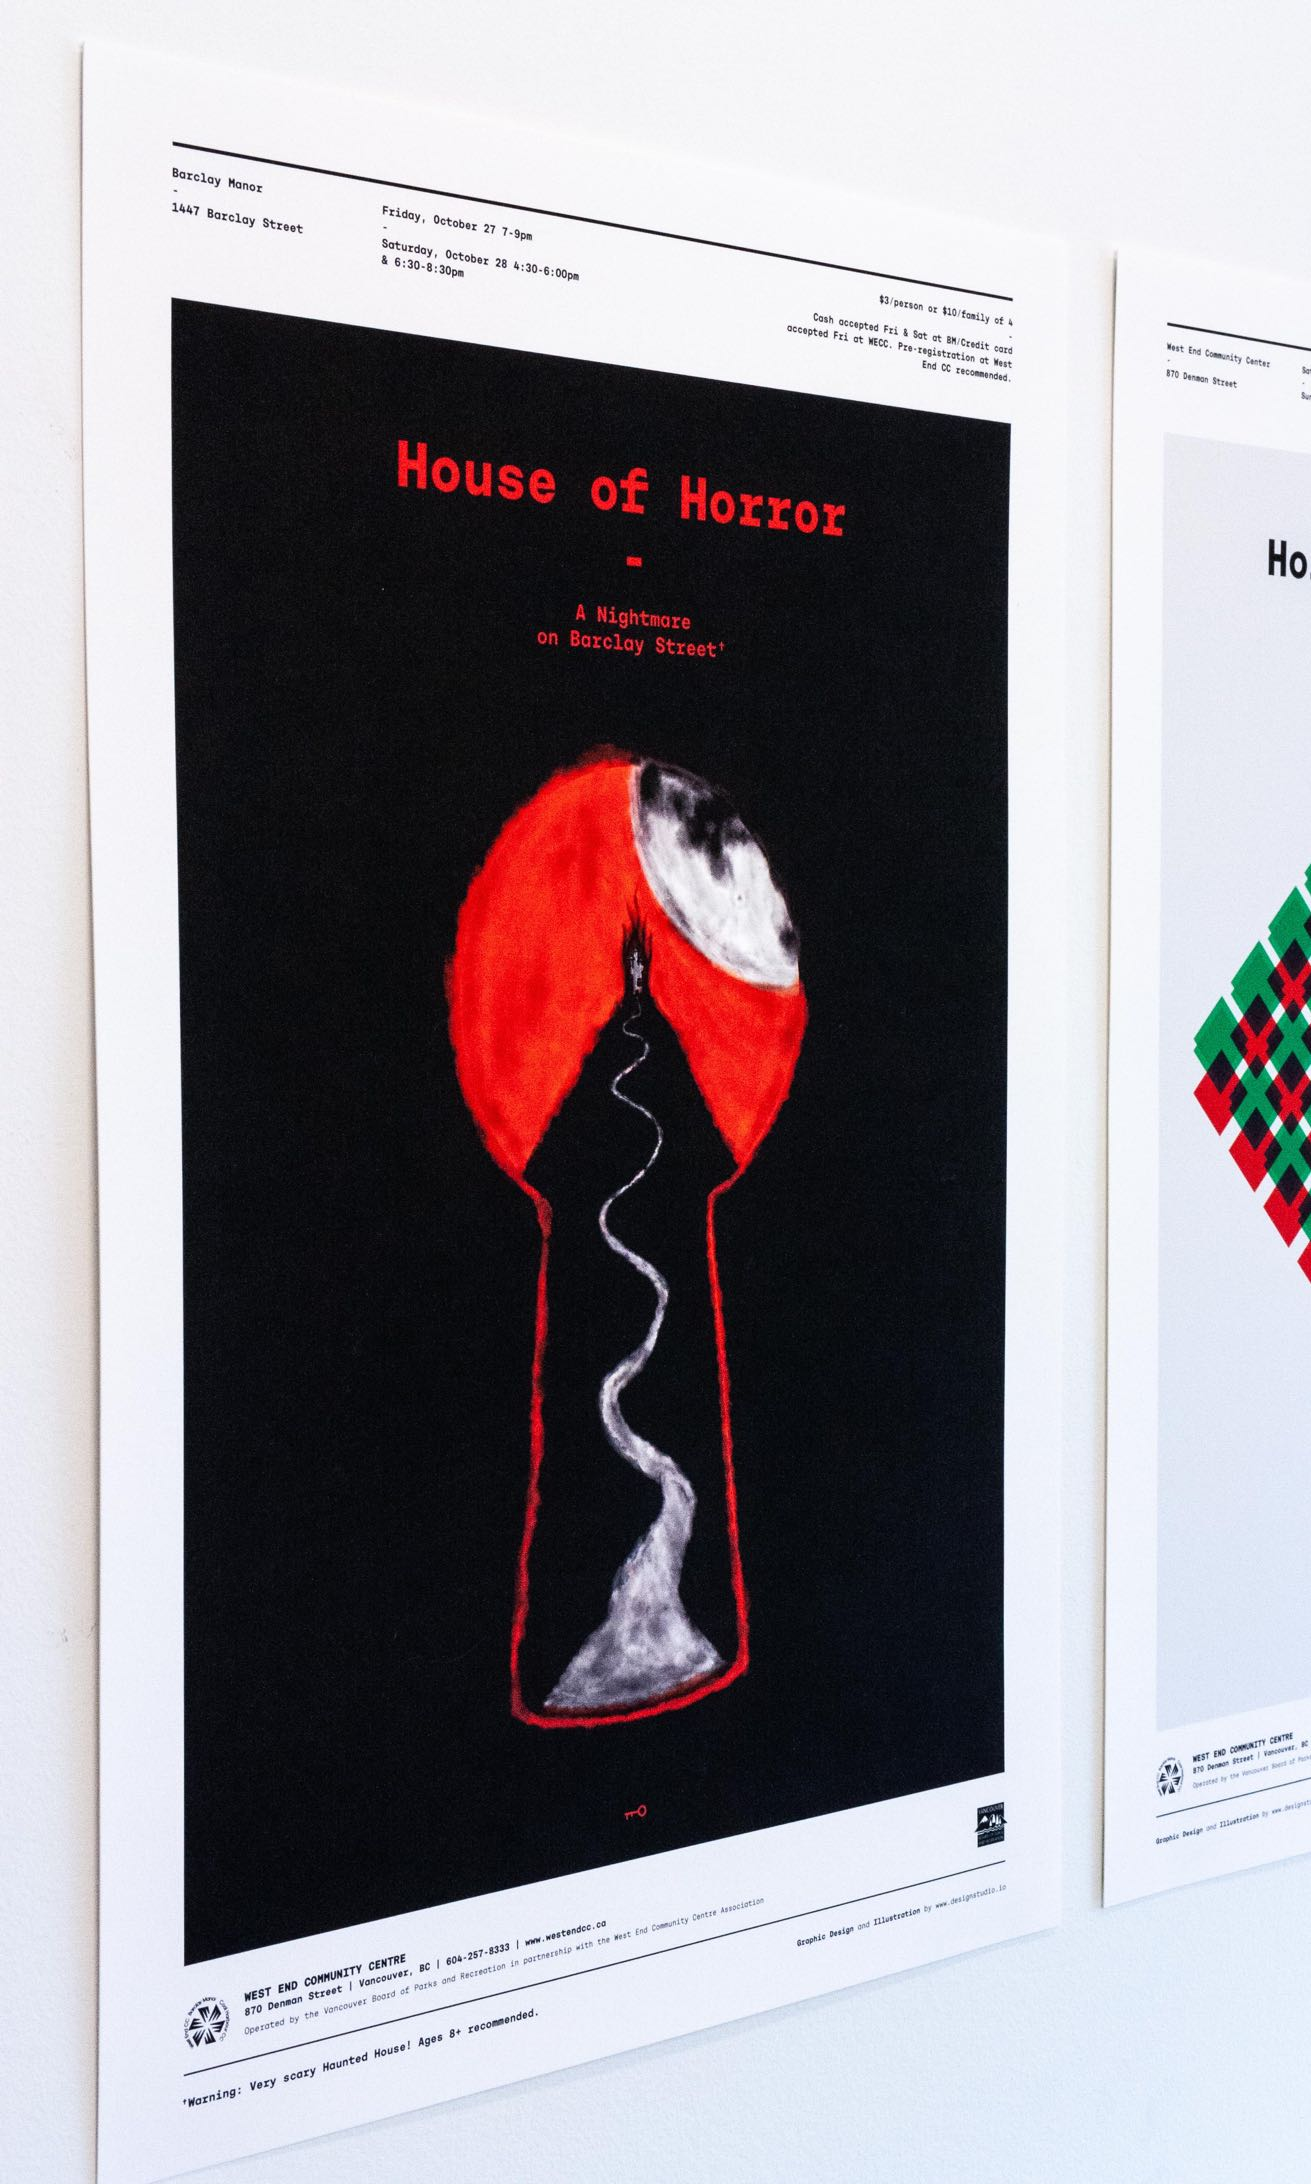 House of Horror Black Halloween poster with a read keyhole, showing a haunted house on top of mountain a full moon — by Dima Yagnyuk.